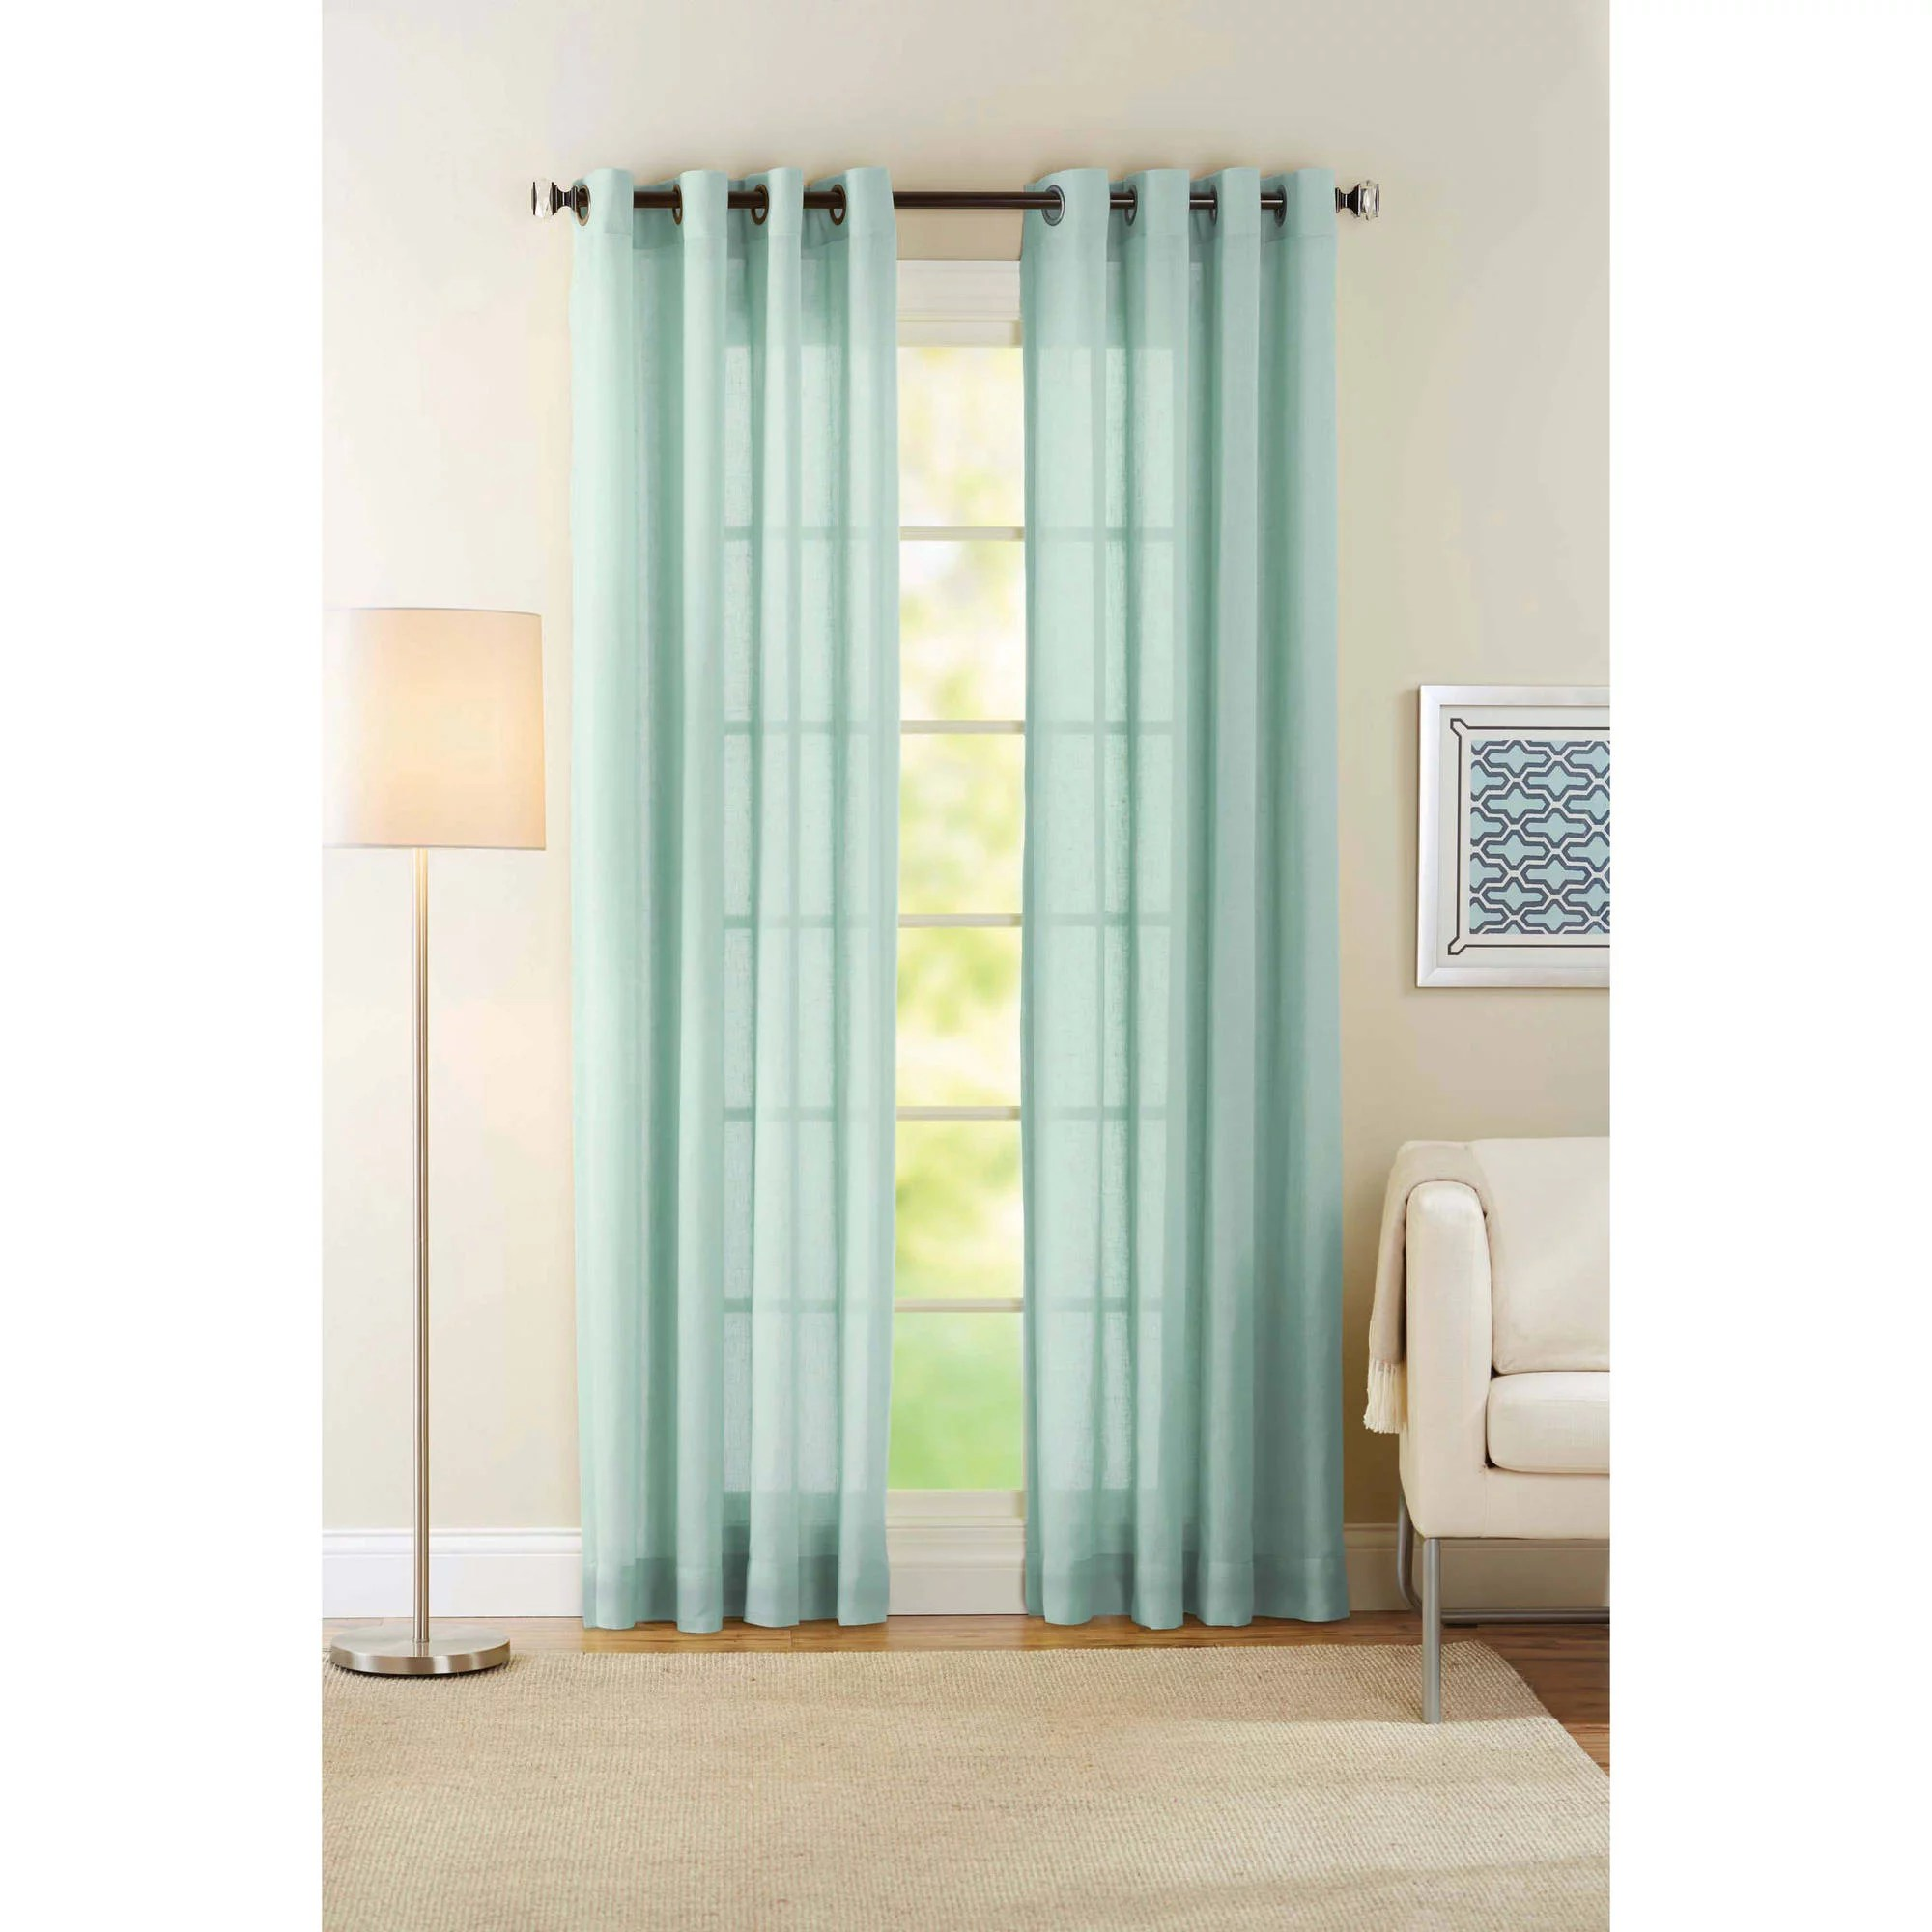 Curtains For Sale At Walmart Diamond Sheer Voile Curtain Panels